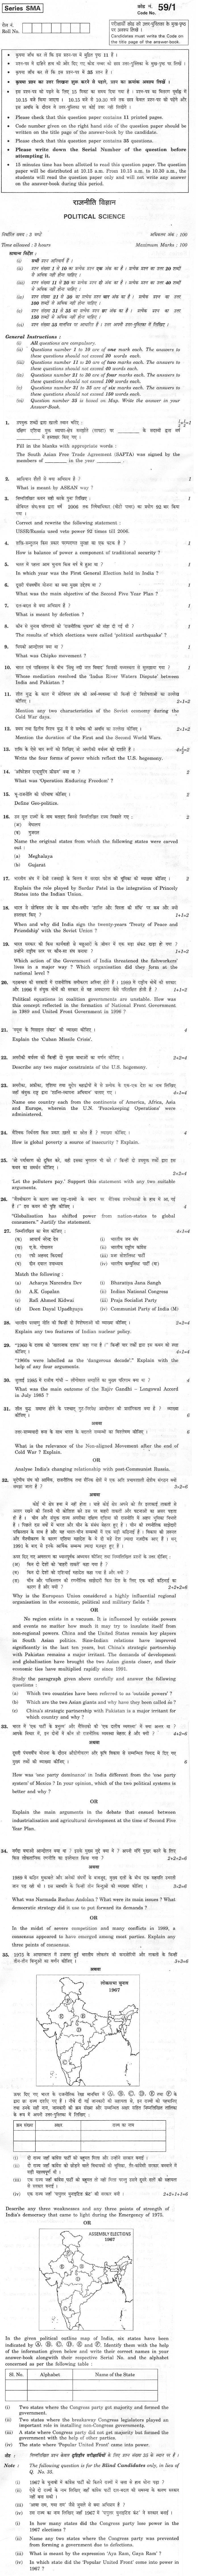 CBSE Class XII Previous Year Question Paper 2012 Political Science